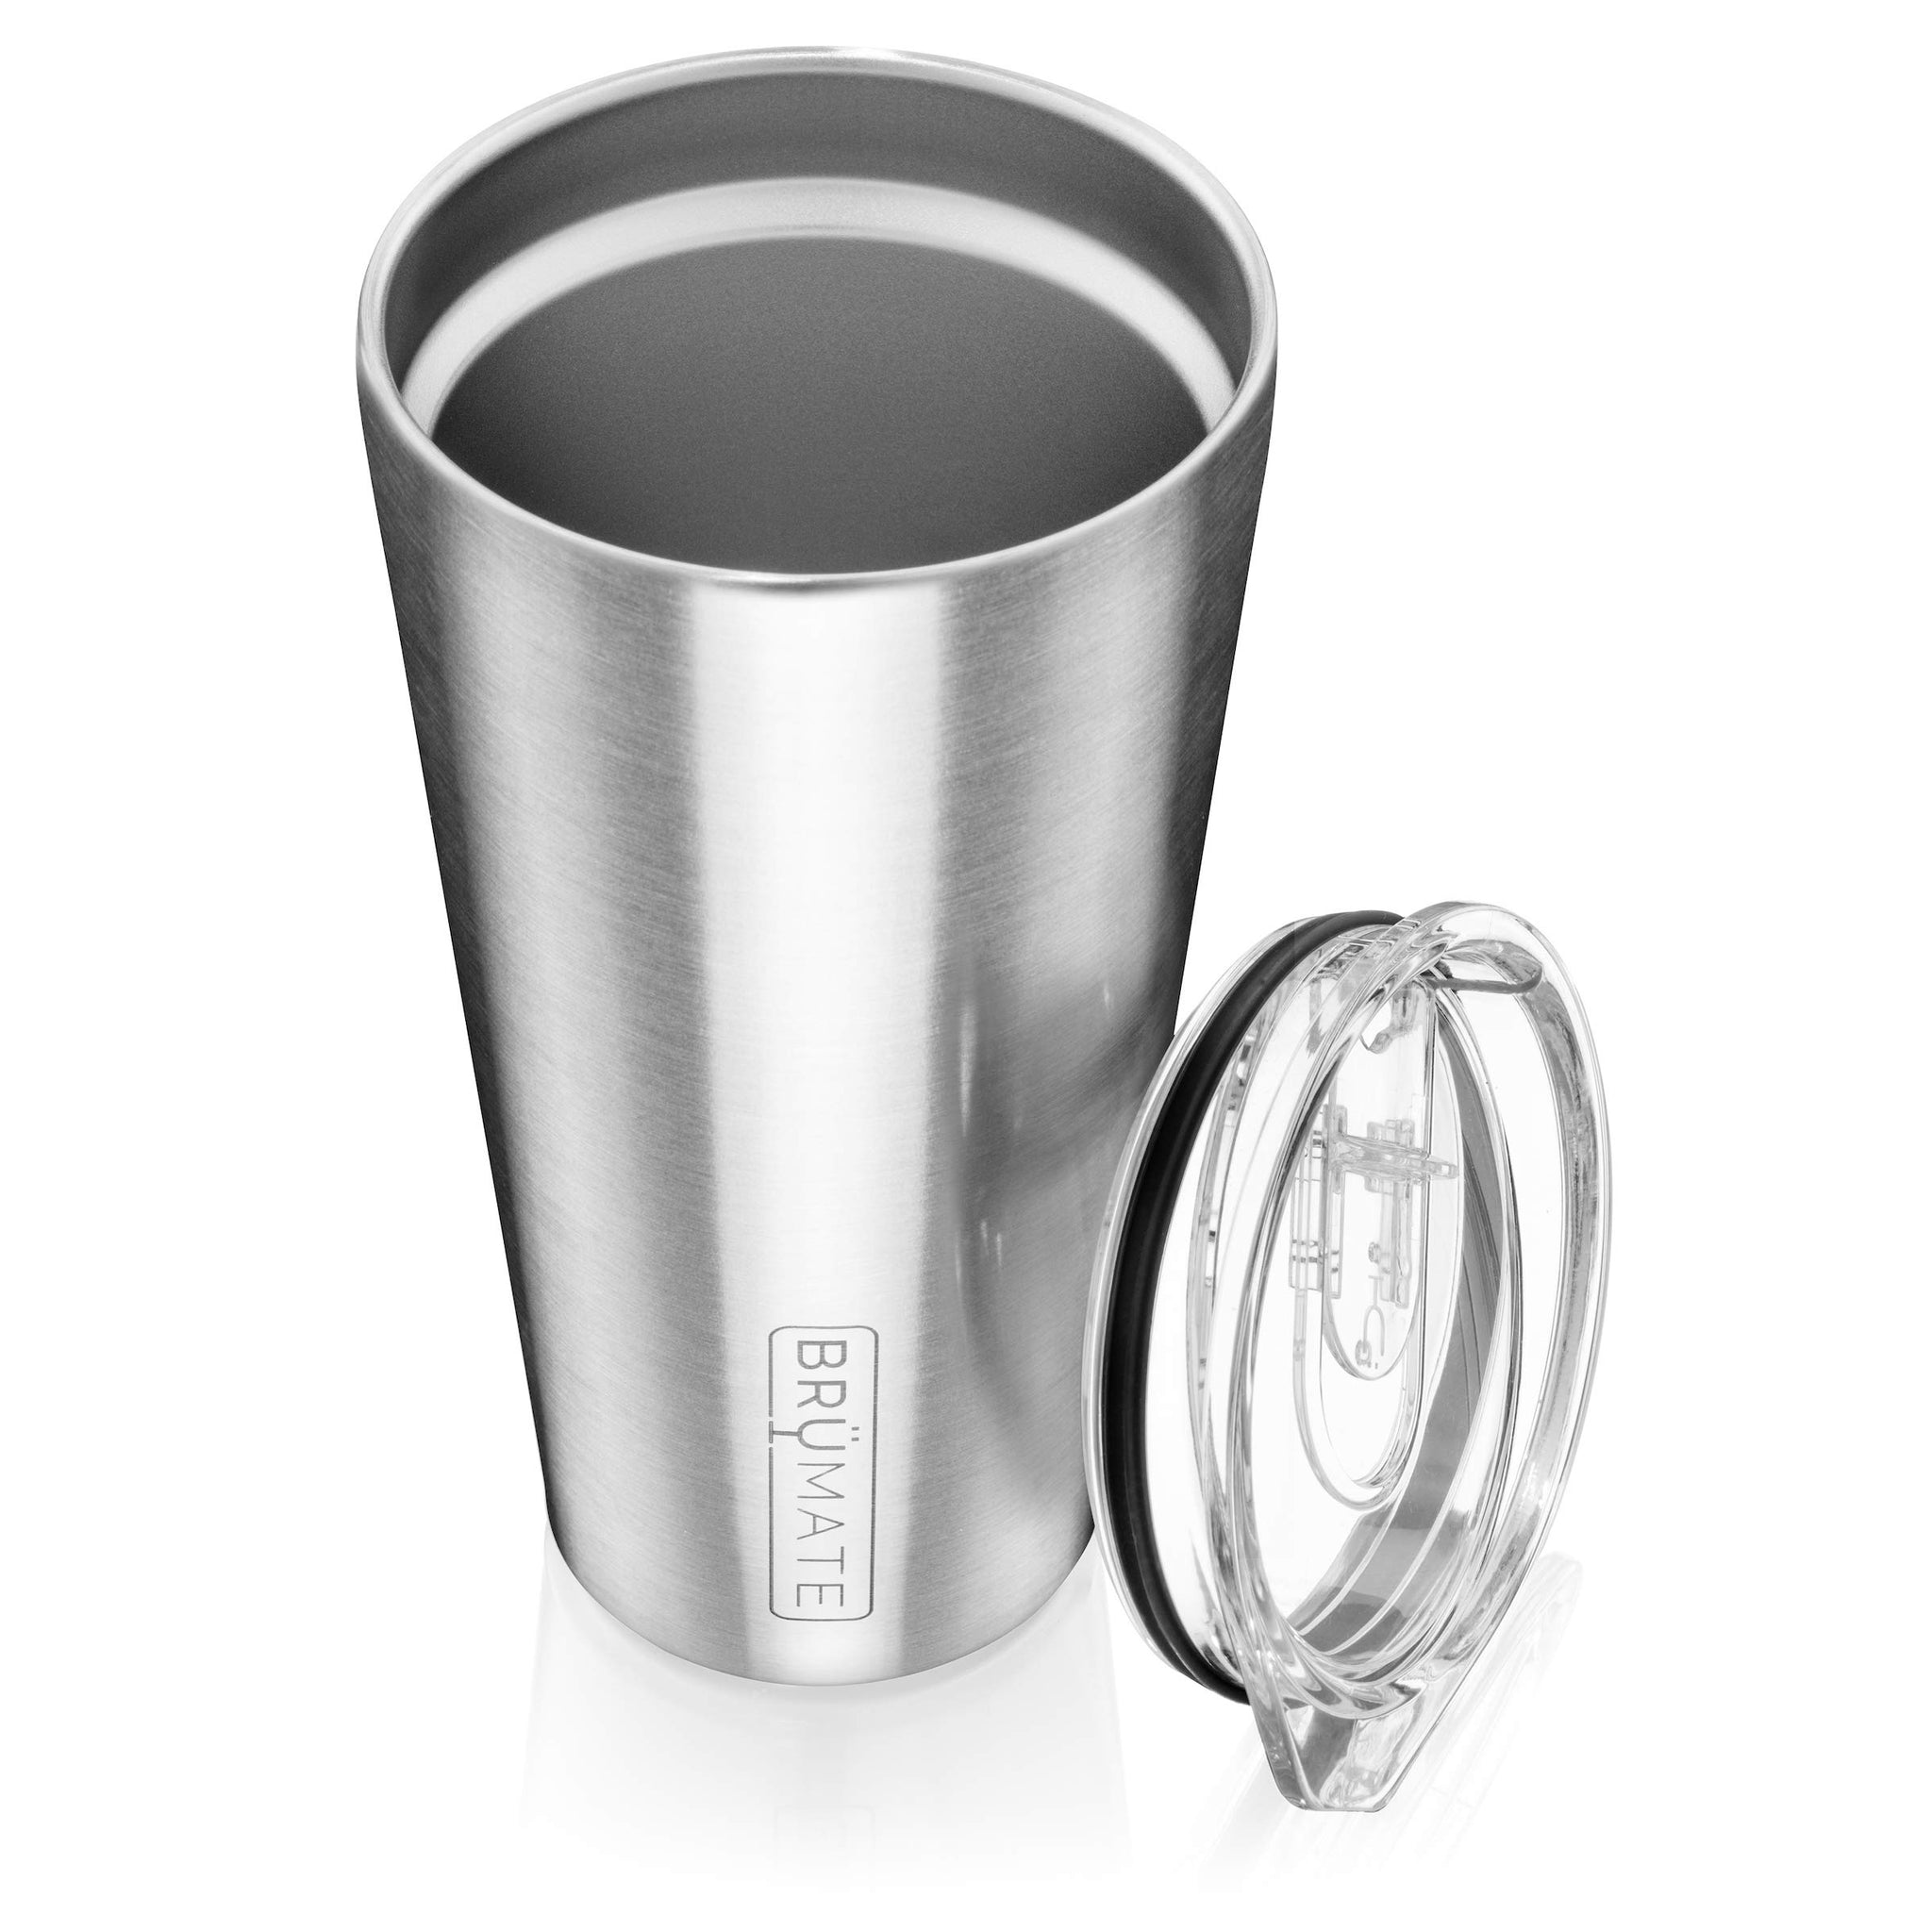 Brümate Imperial Pint 20oz Shatterproof Double Wall Vacuum Insulated Stainless Steel Travel & Camping Mug for Beer, Cocktails, Coffee & Tea with Splash-Proof Lid for Men & Women (Matte Black)